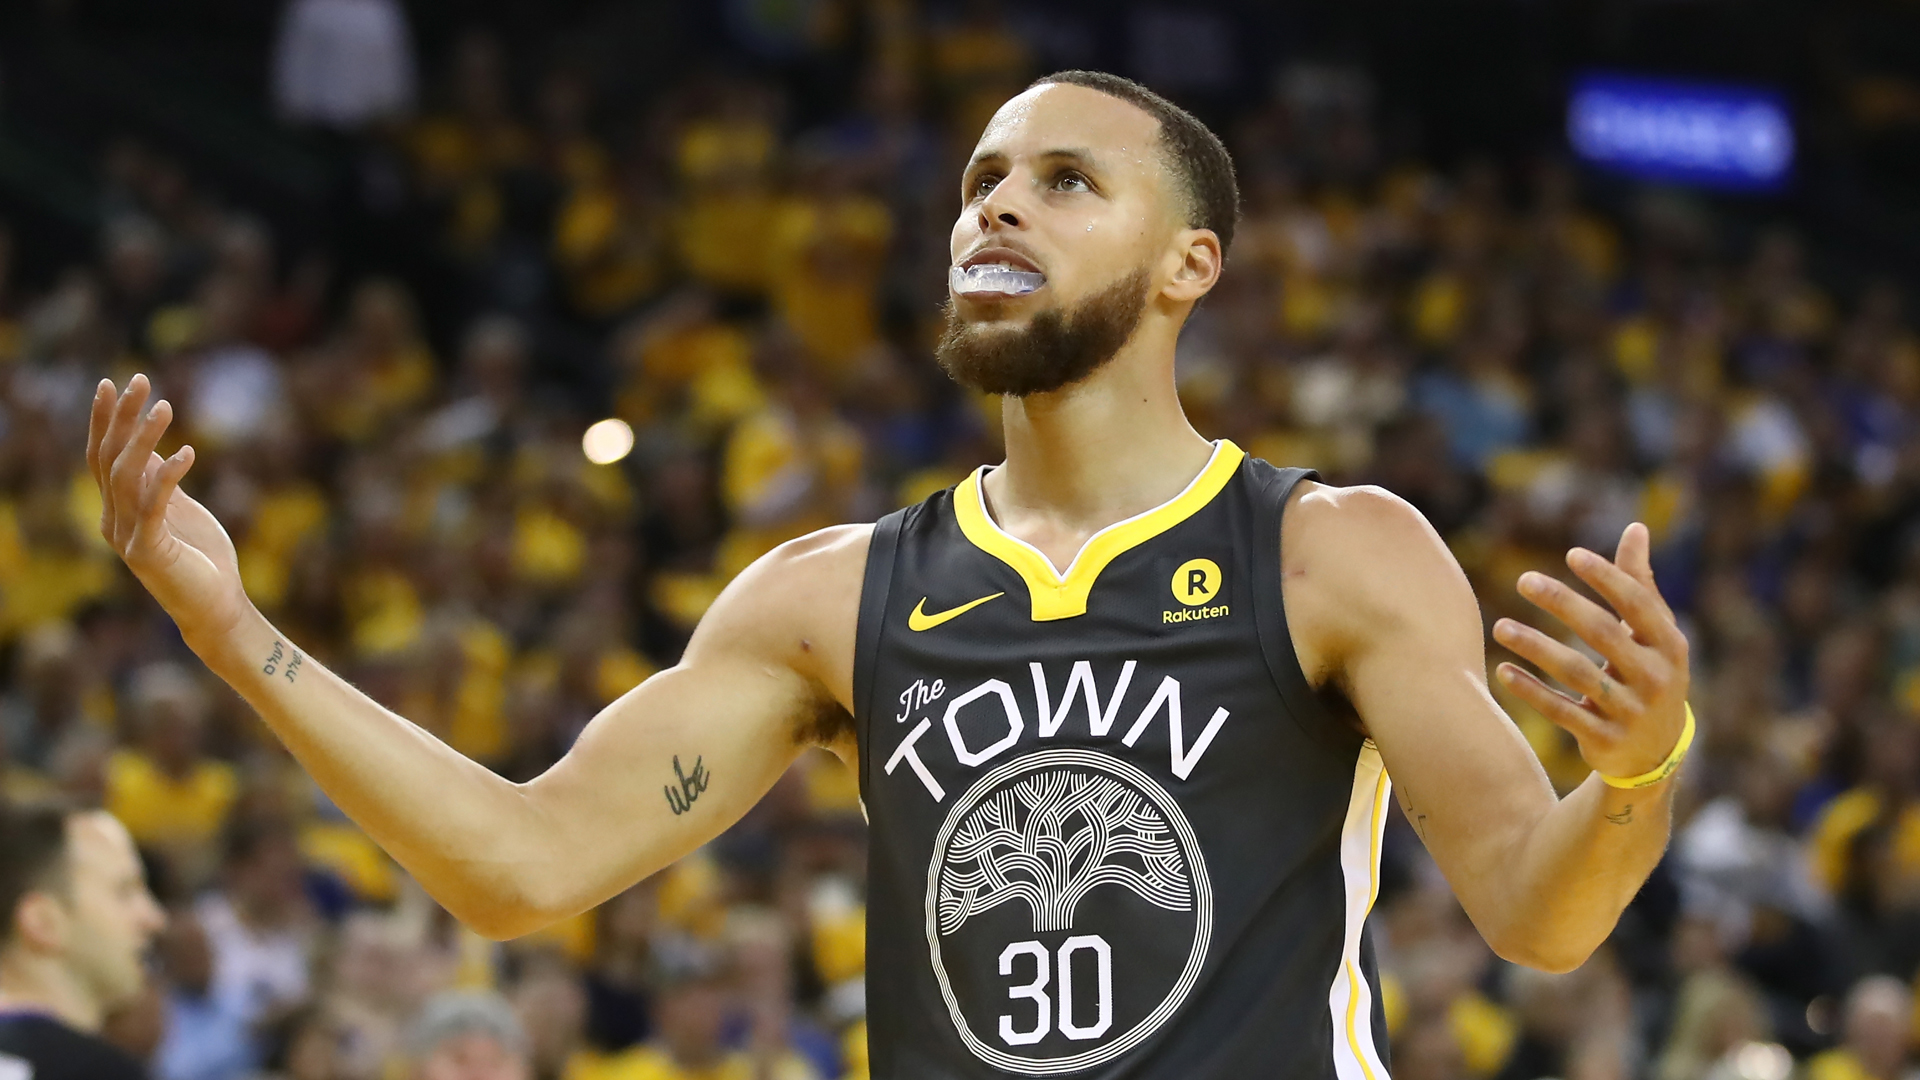 Will Stephen Curry Be Named NBA Finals MVP after Making History?